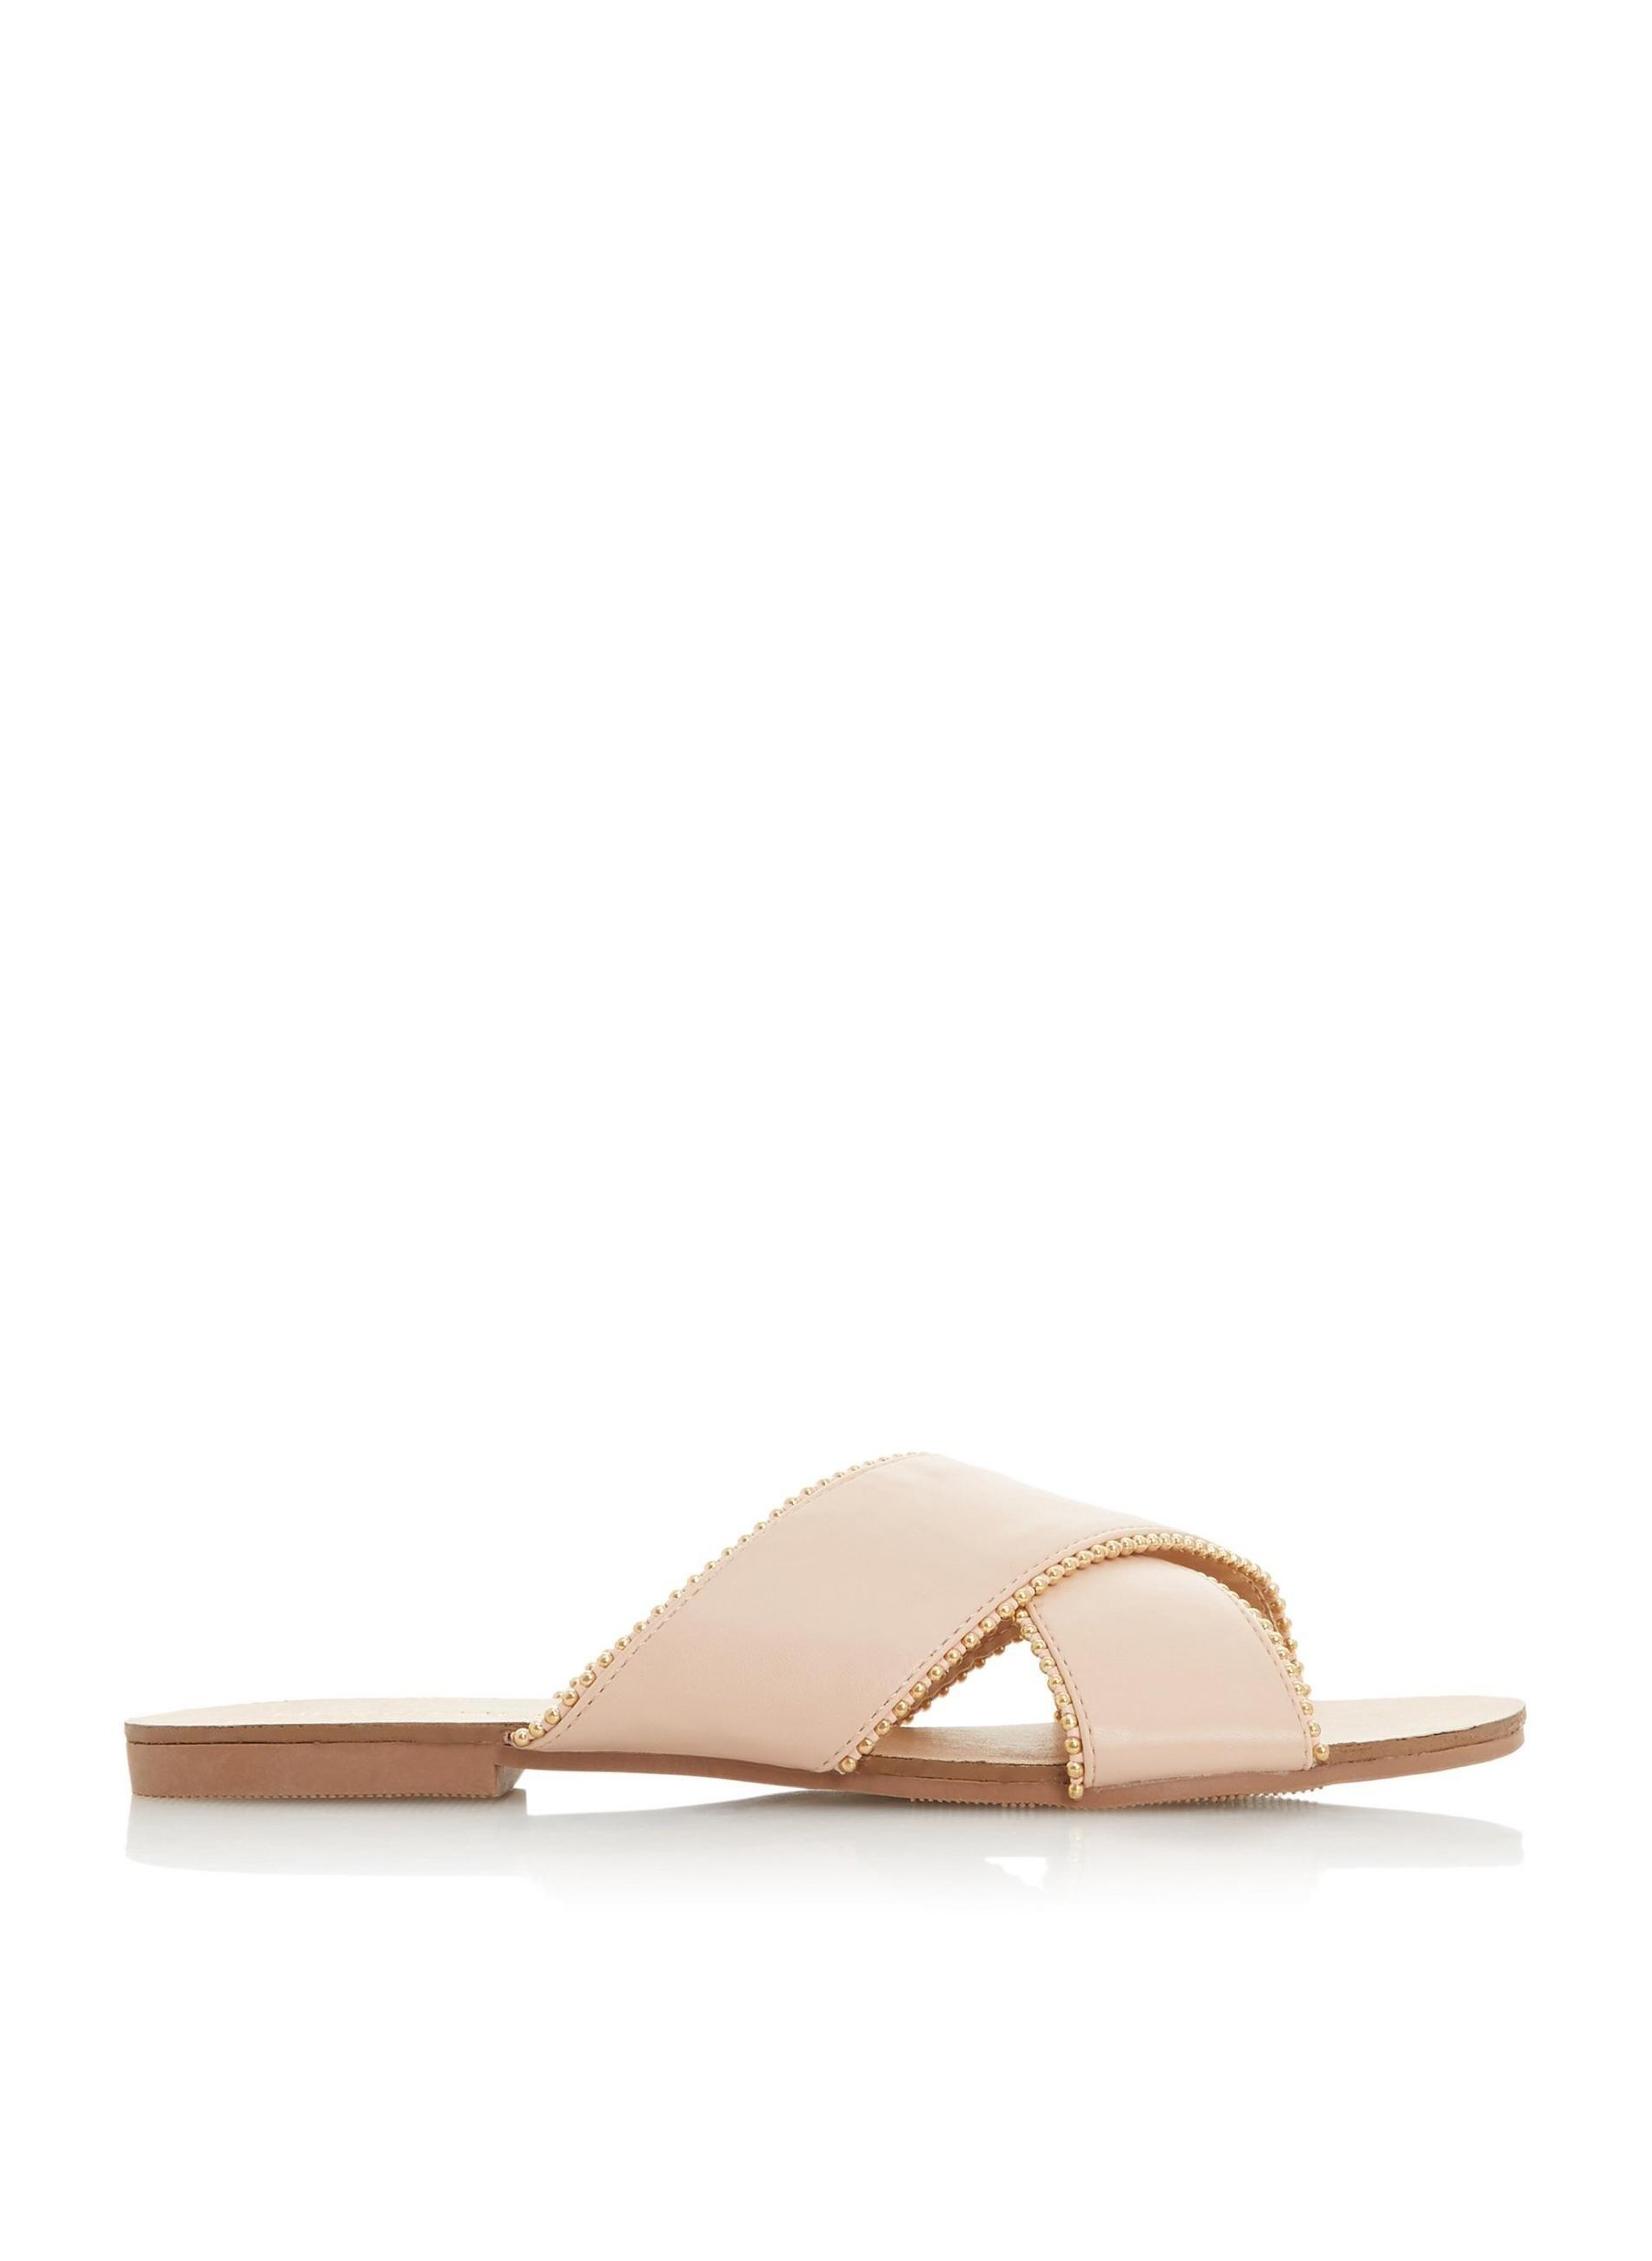 33f51dce7 Lyst - Dune By Dune Nude  lorna  Ladies Flat Sandals in Natural